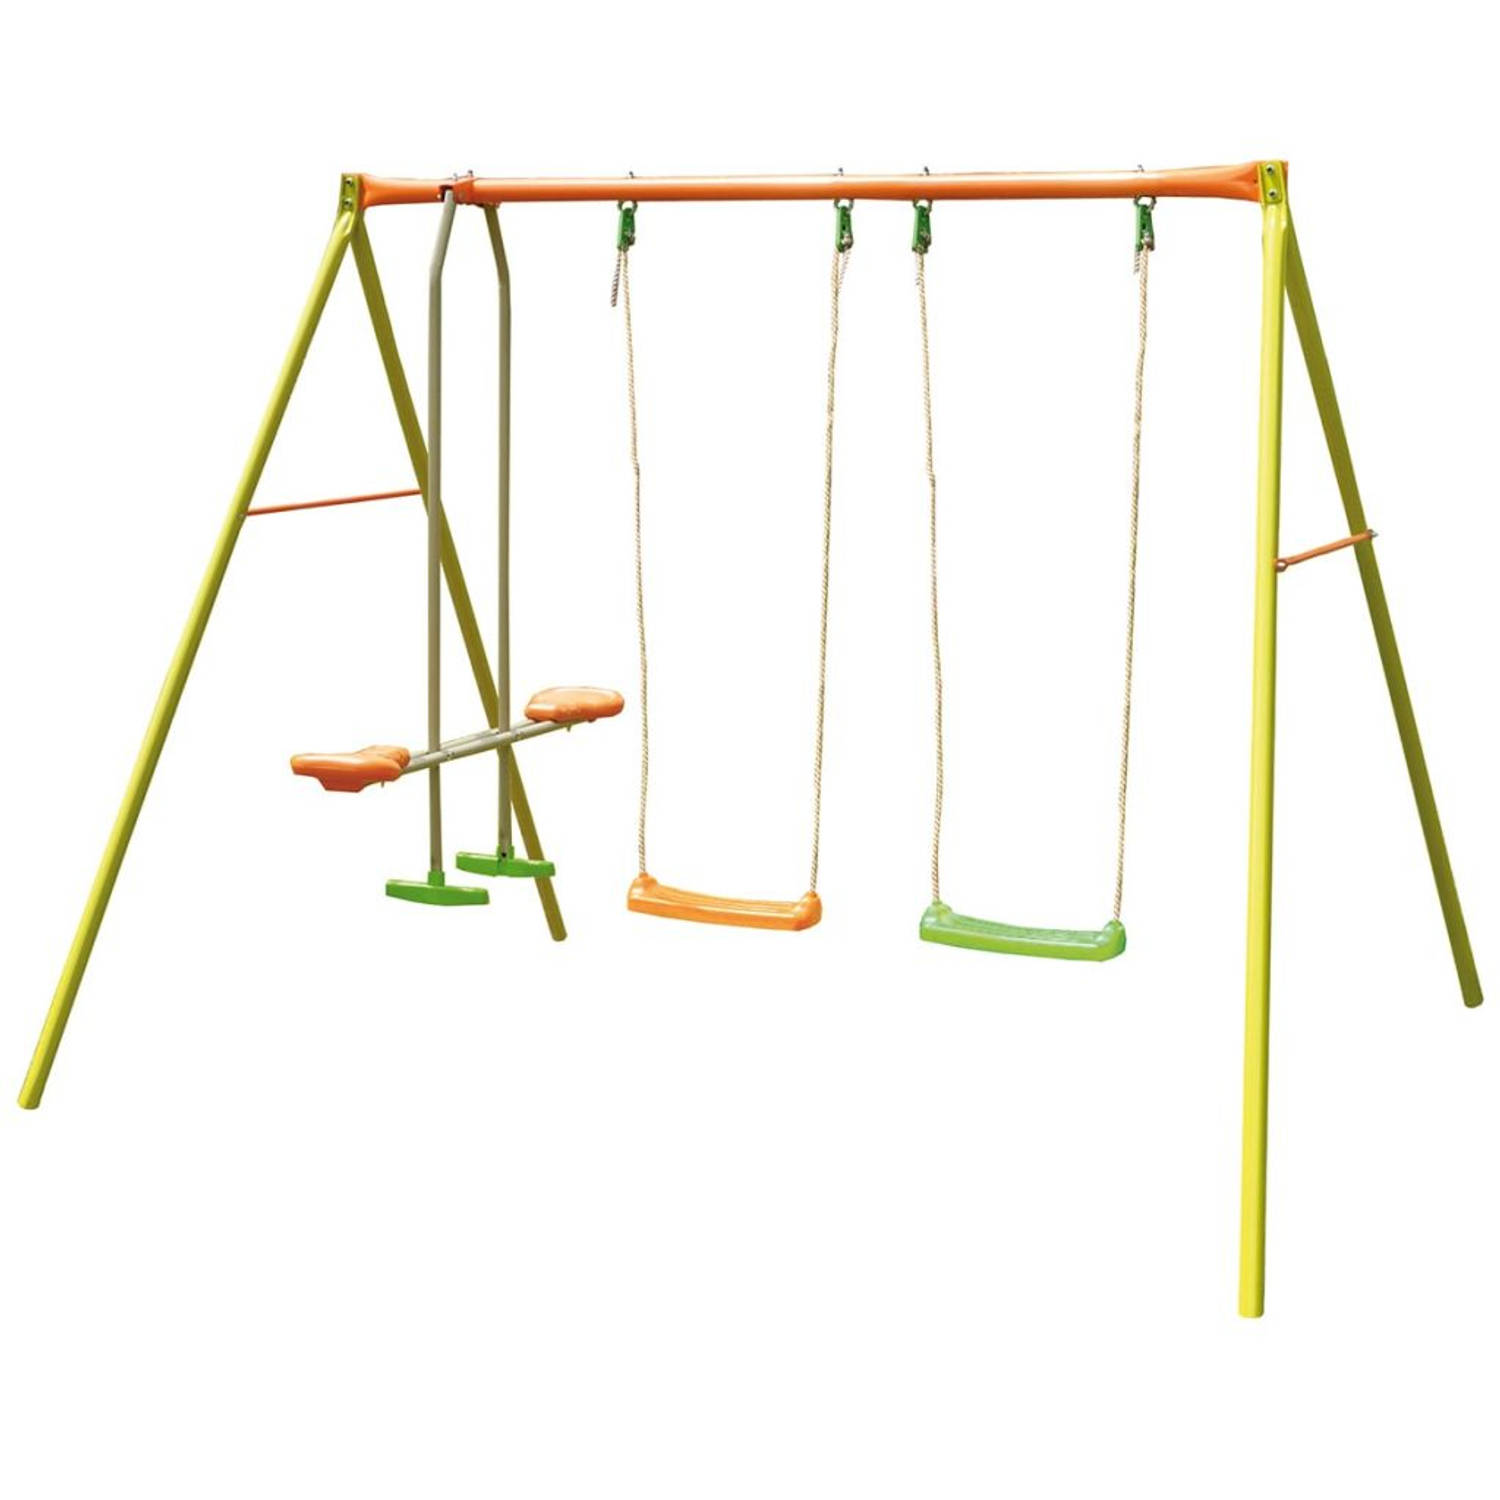 TRIGANO Agility schommelset Valwë 260x190x190 cm staal J-10455P6